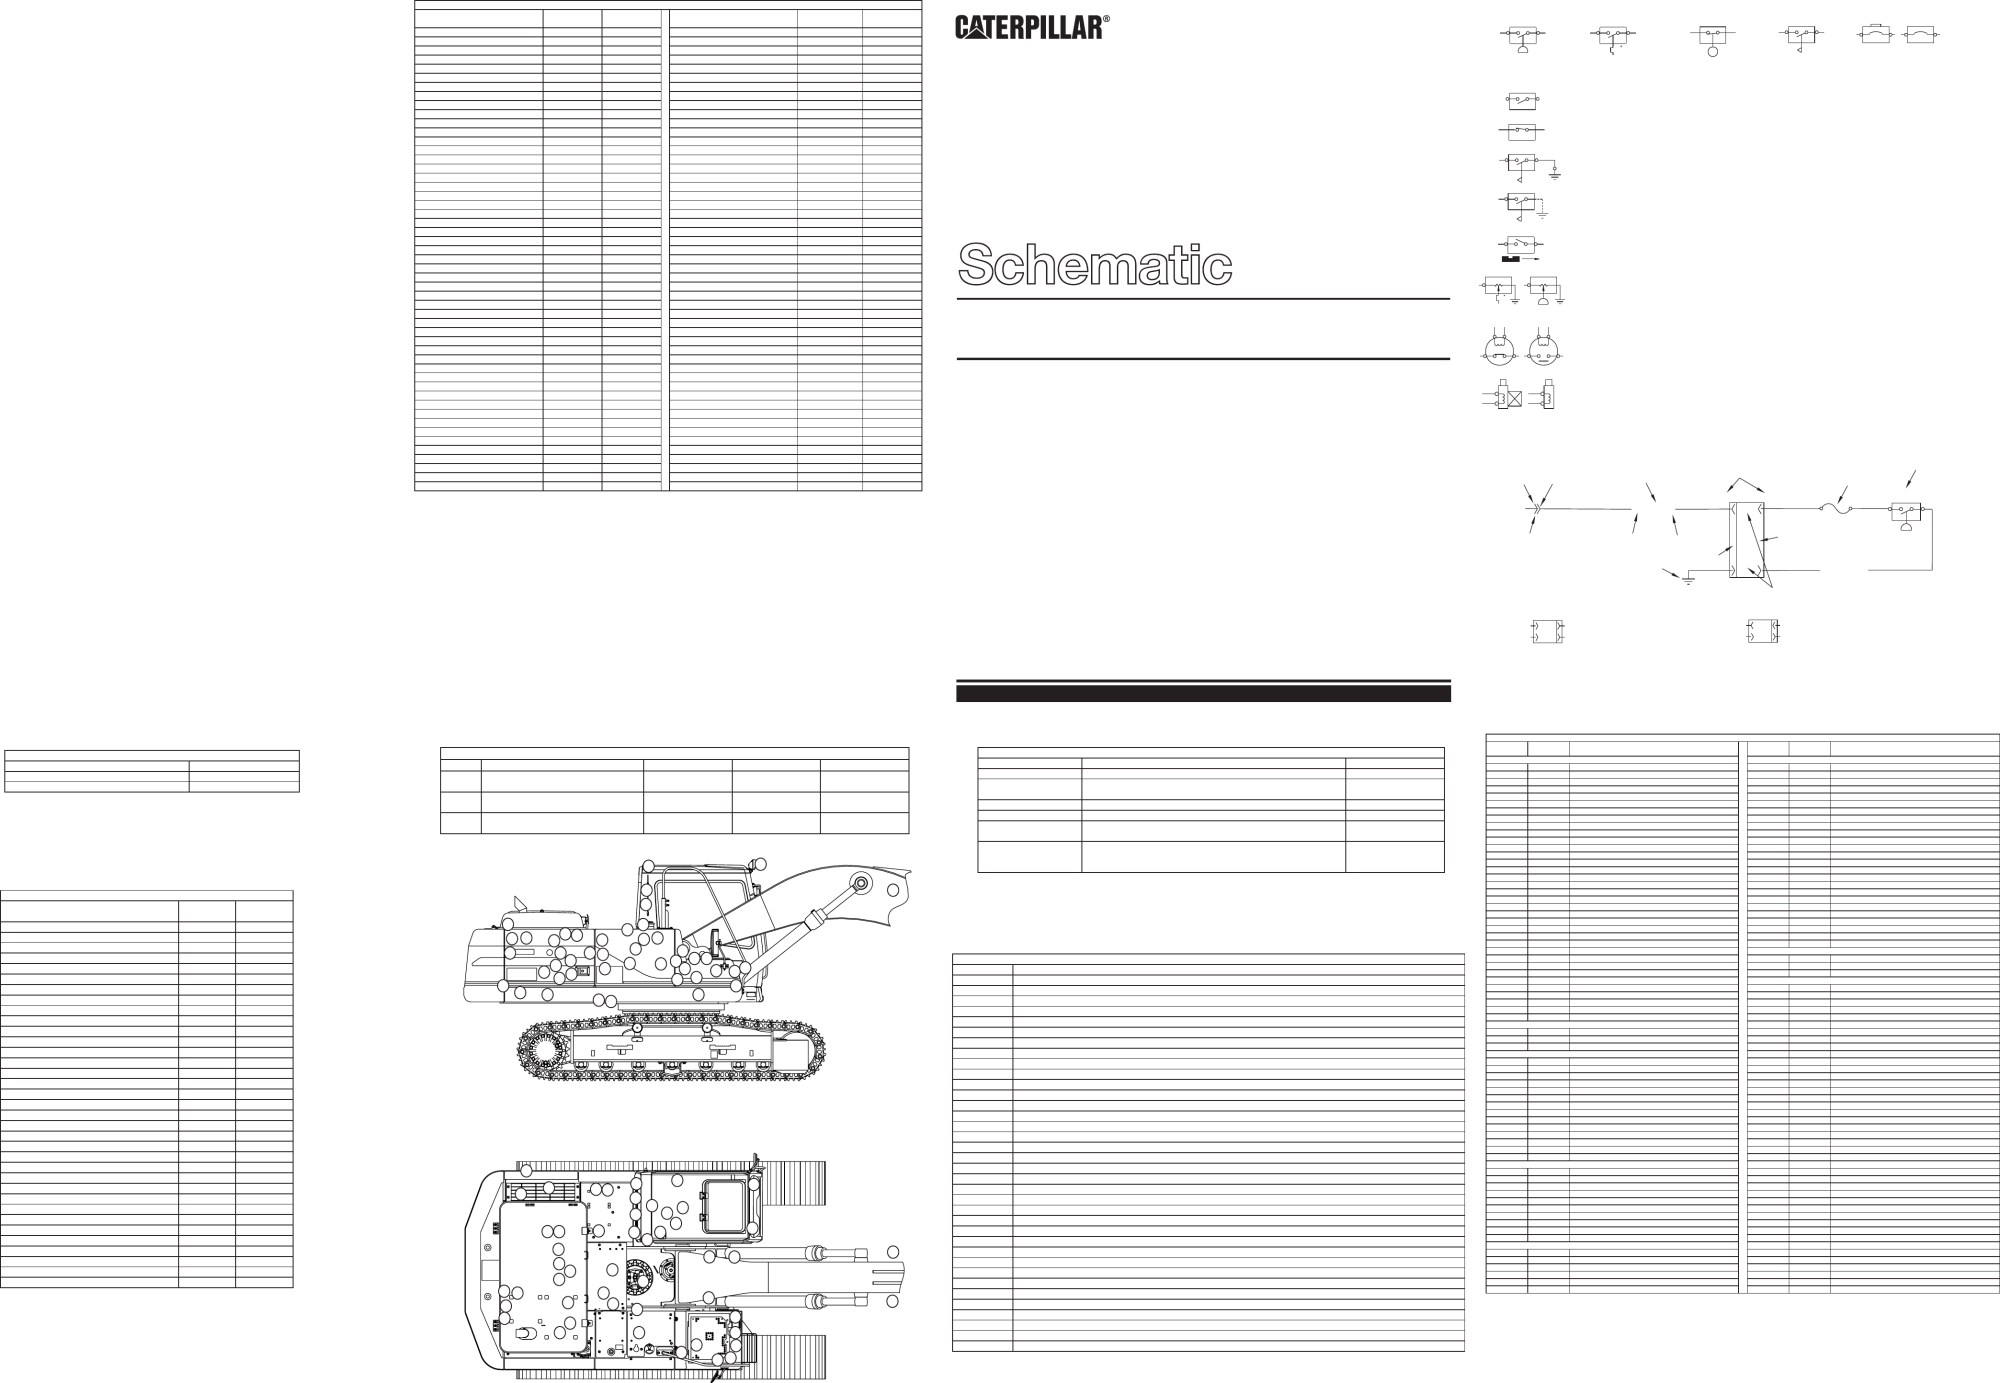 hight resolution of 315b excavator electrical schematic used in service manual renr1120